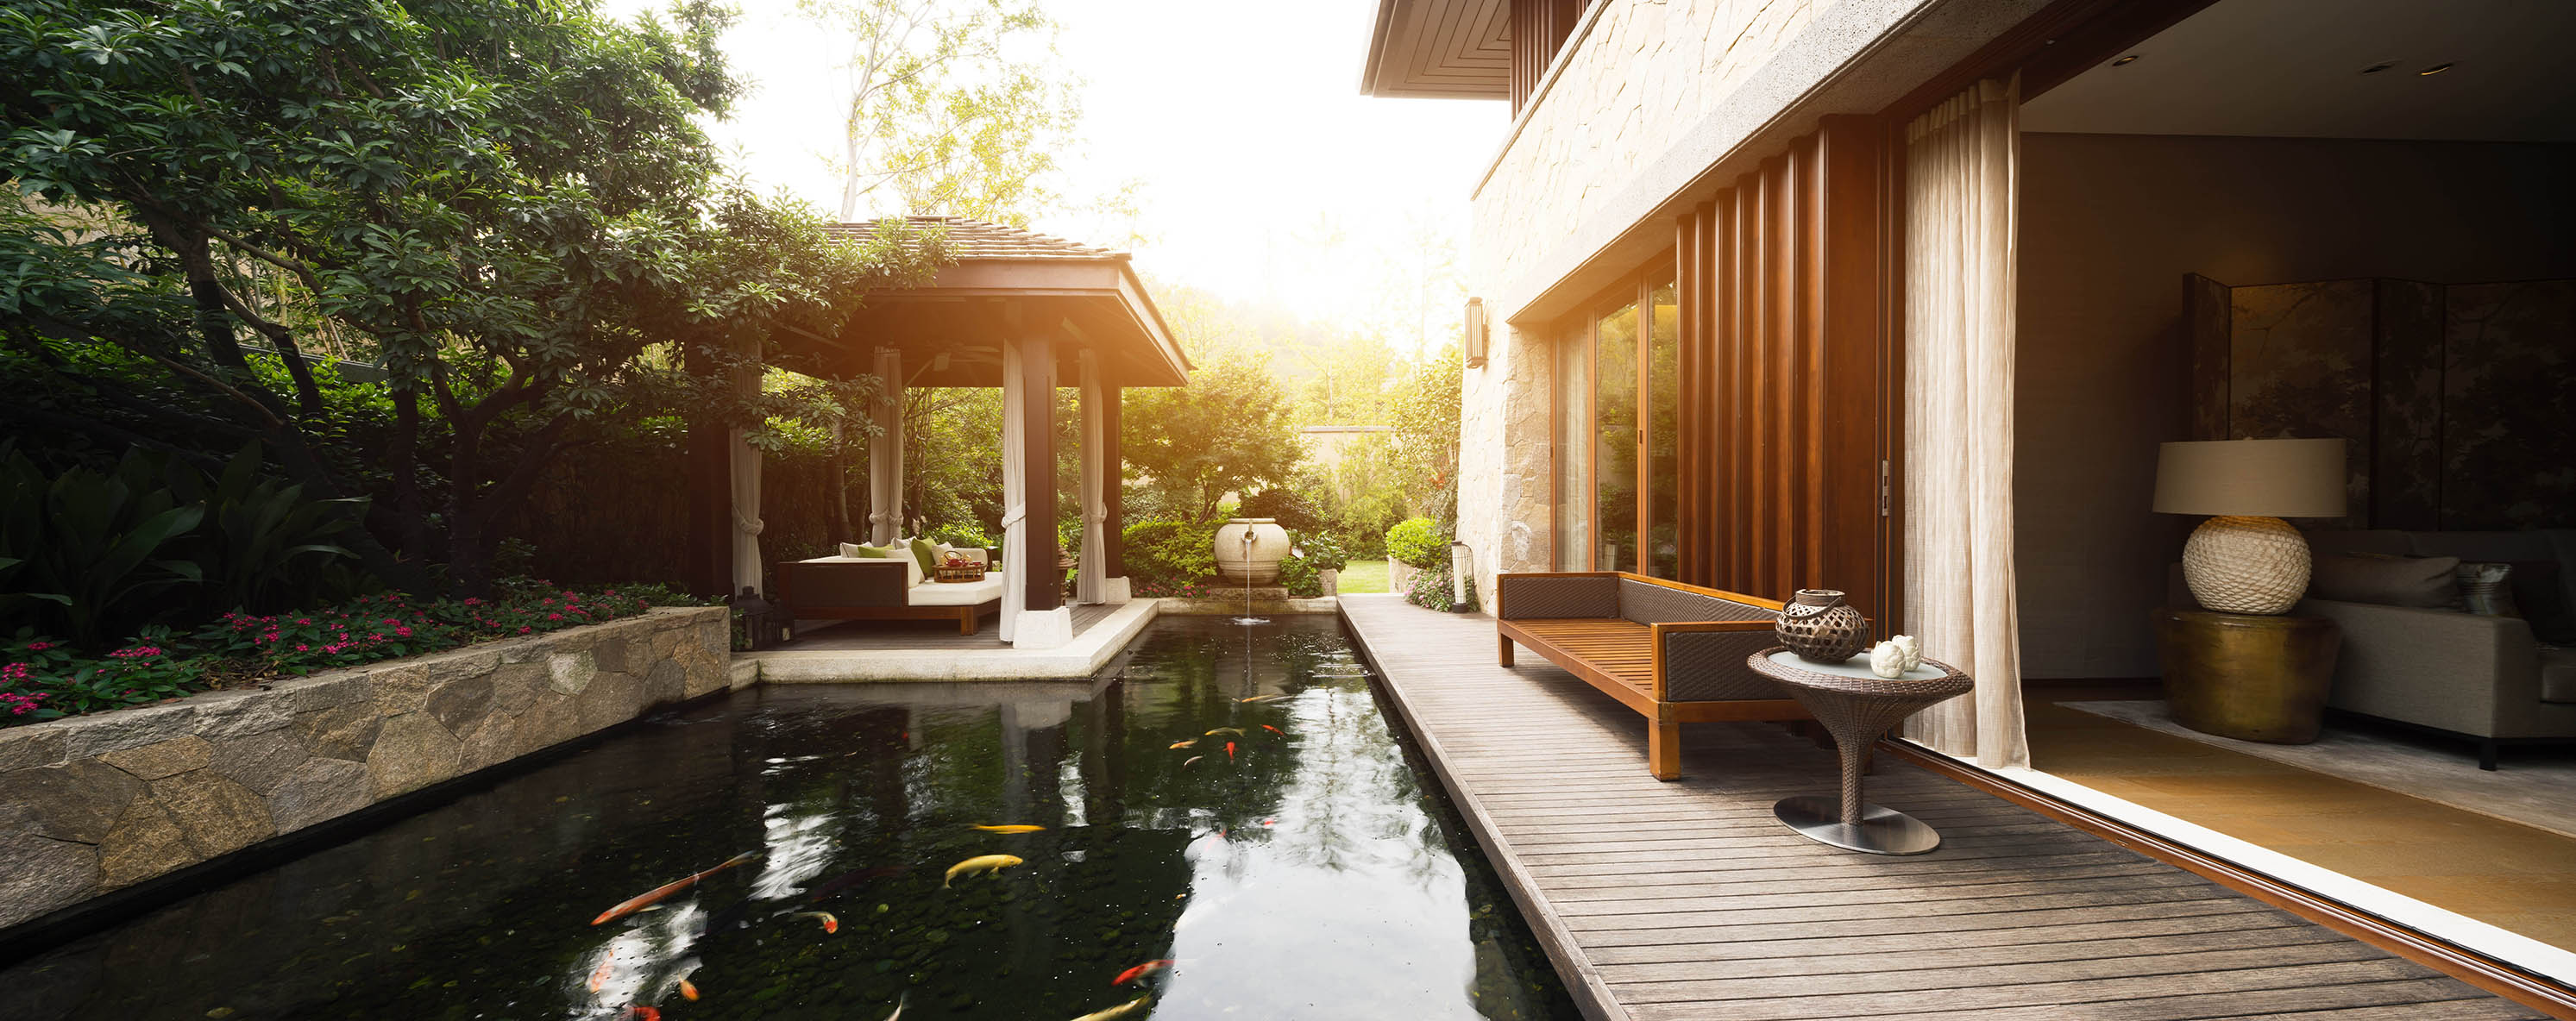 design and furniture in rest place with pond